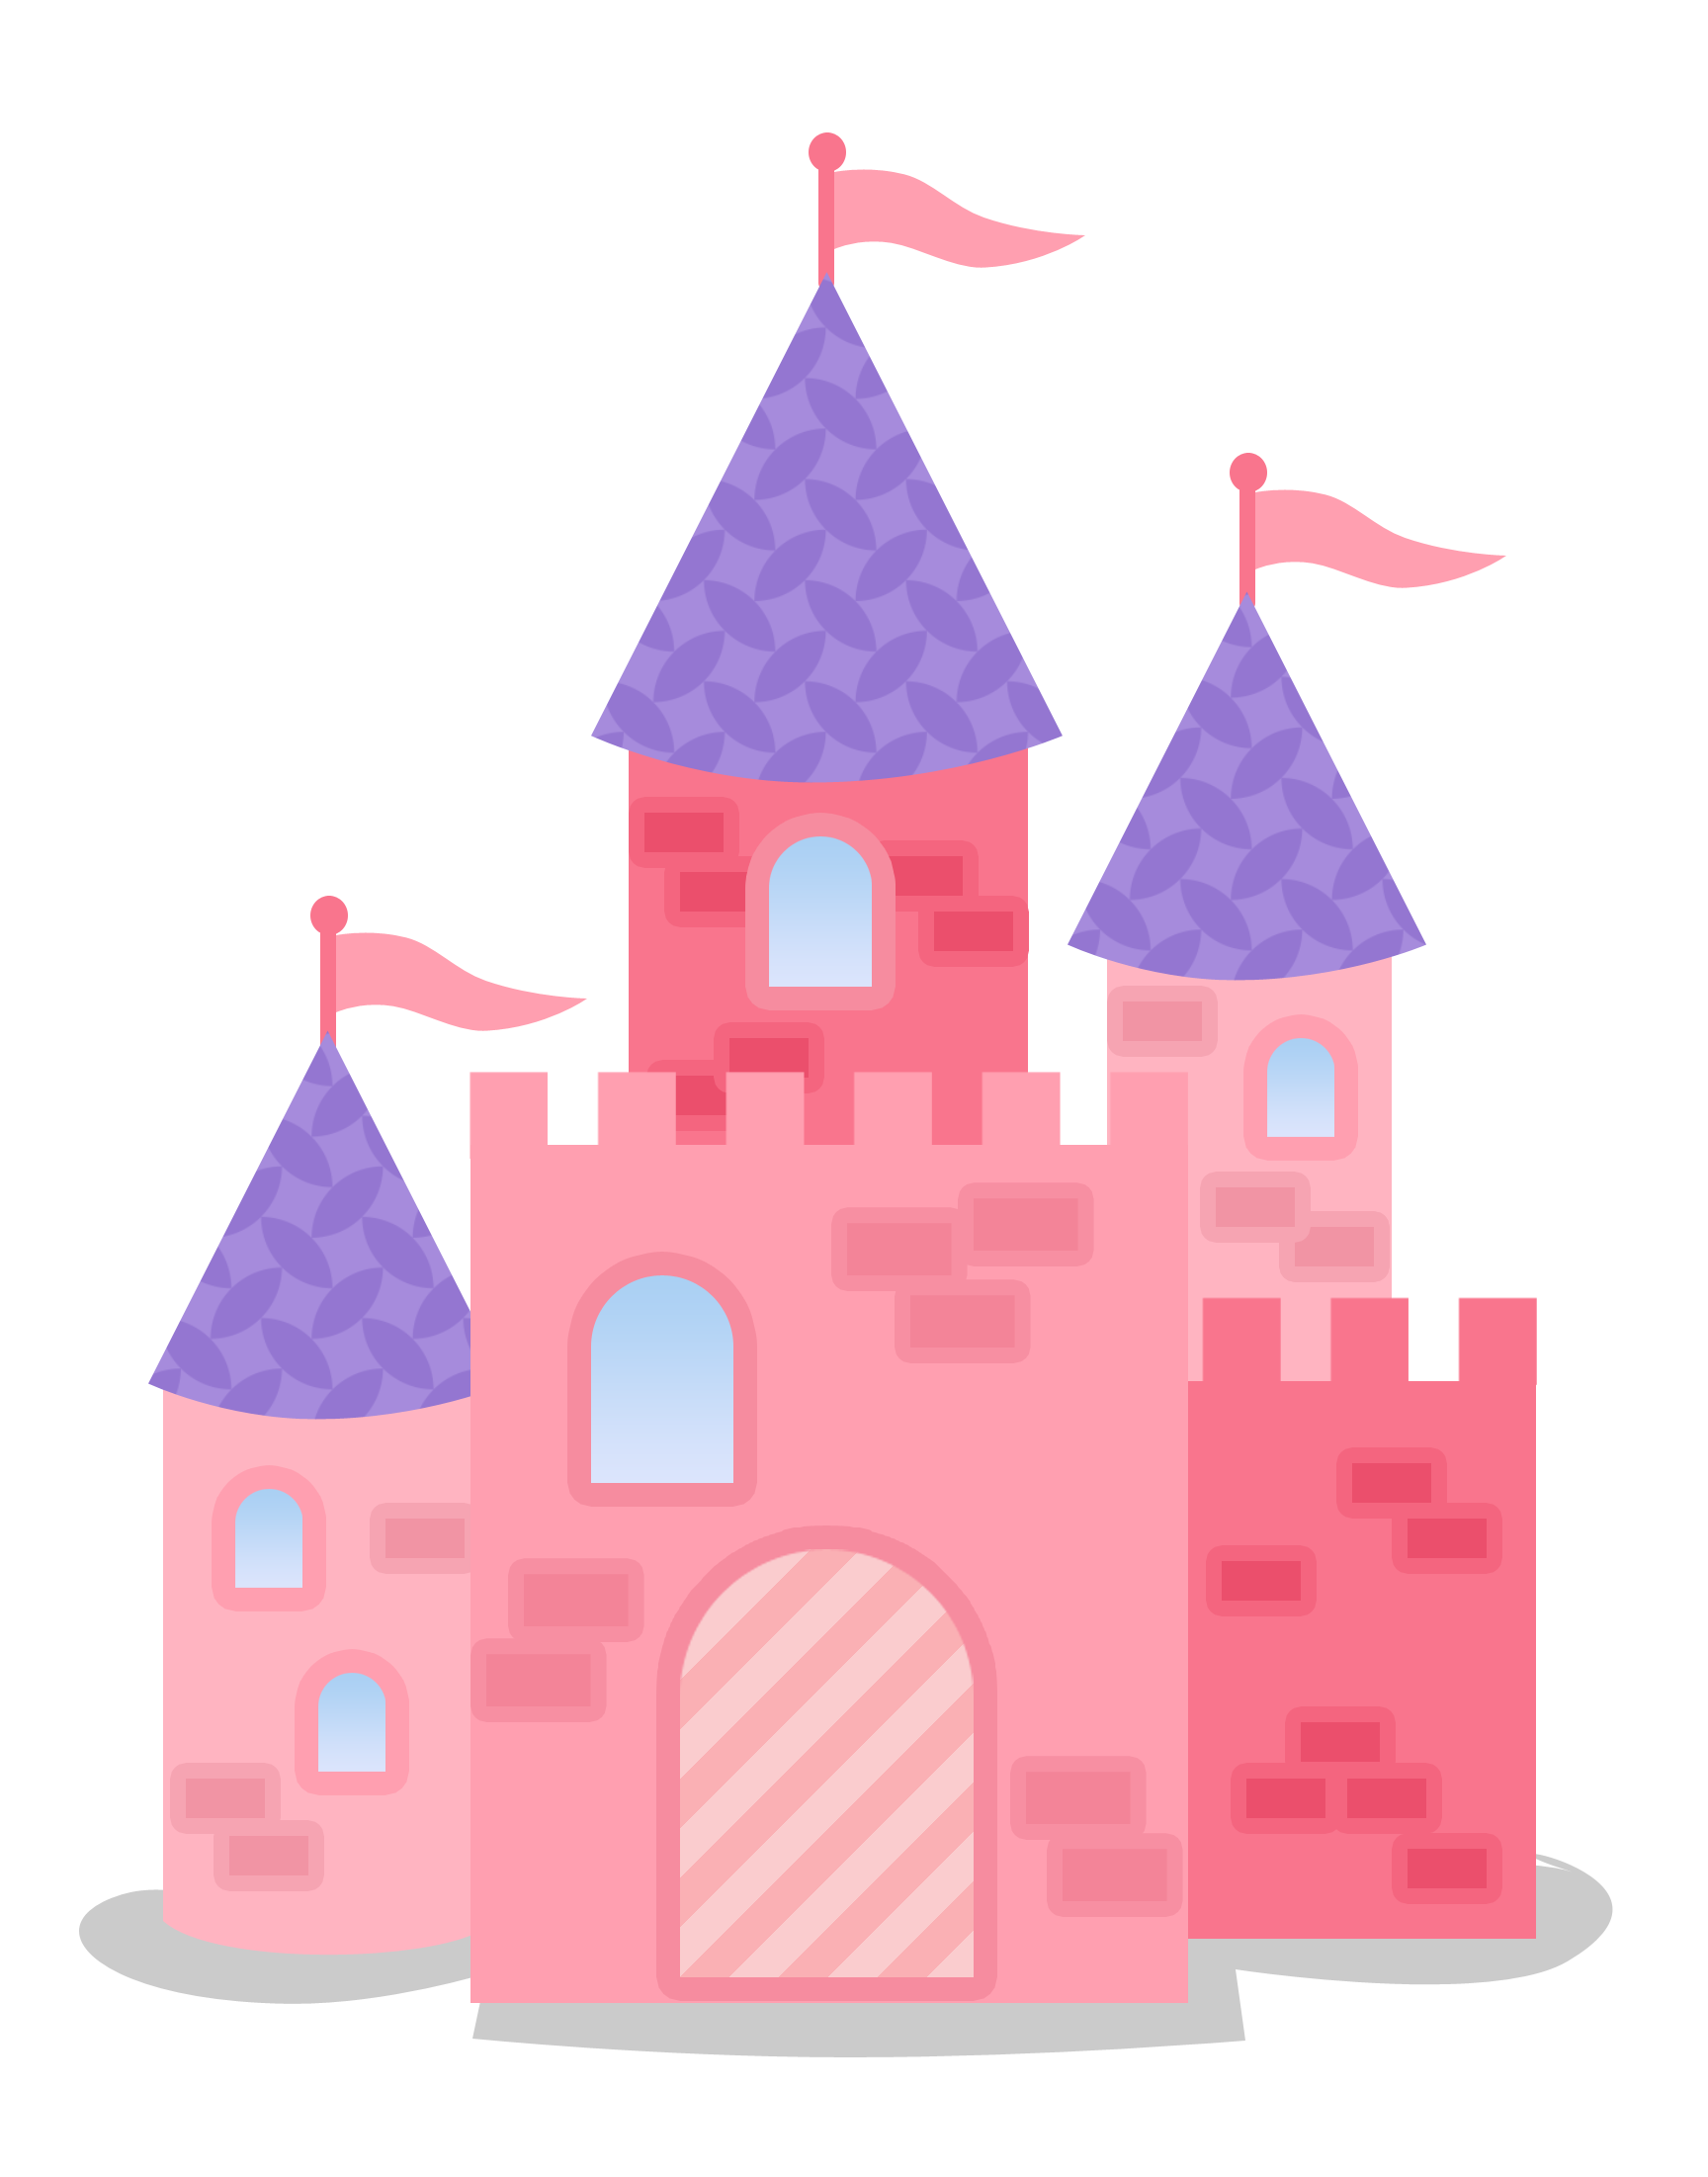 Snow White - LittleFairyTalePrincess-Castle2.png - Minus | clipart ...